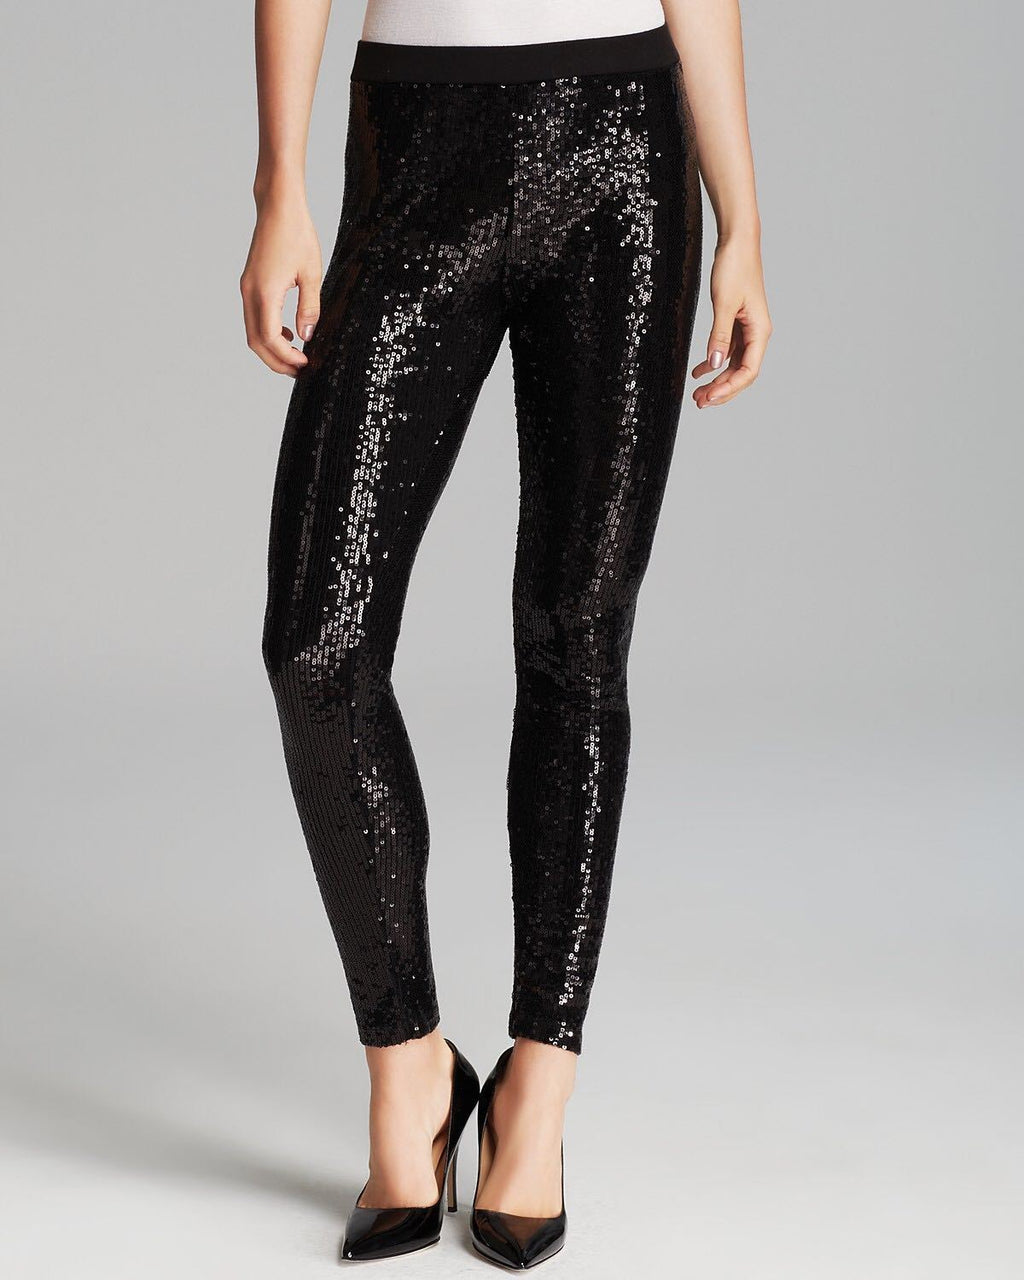 Sequin Leggings Leggings Loom Rack Black S